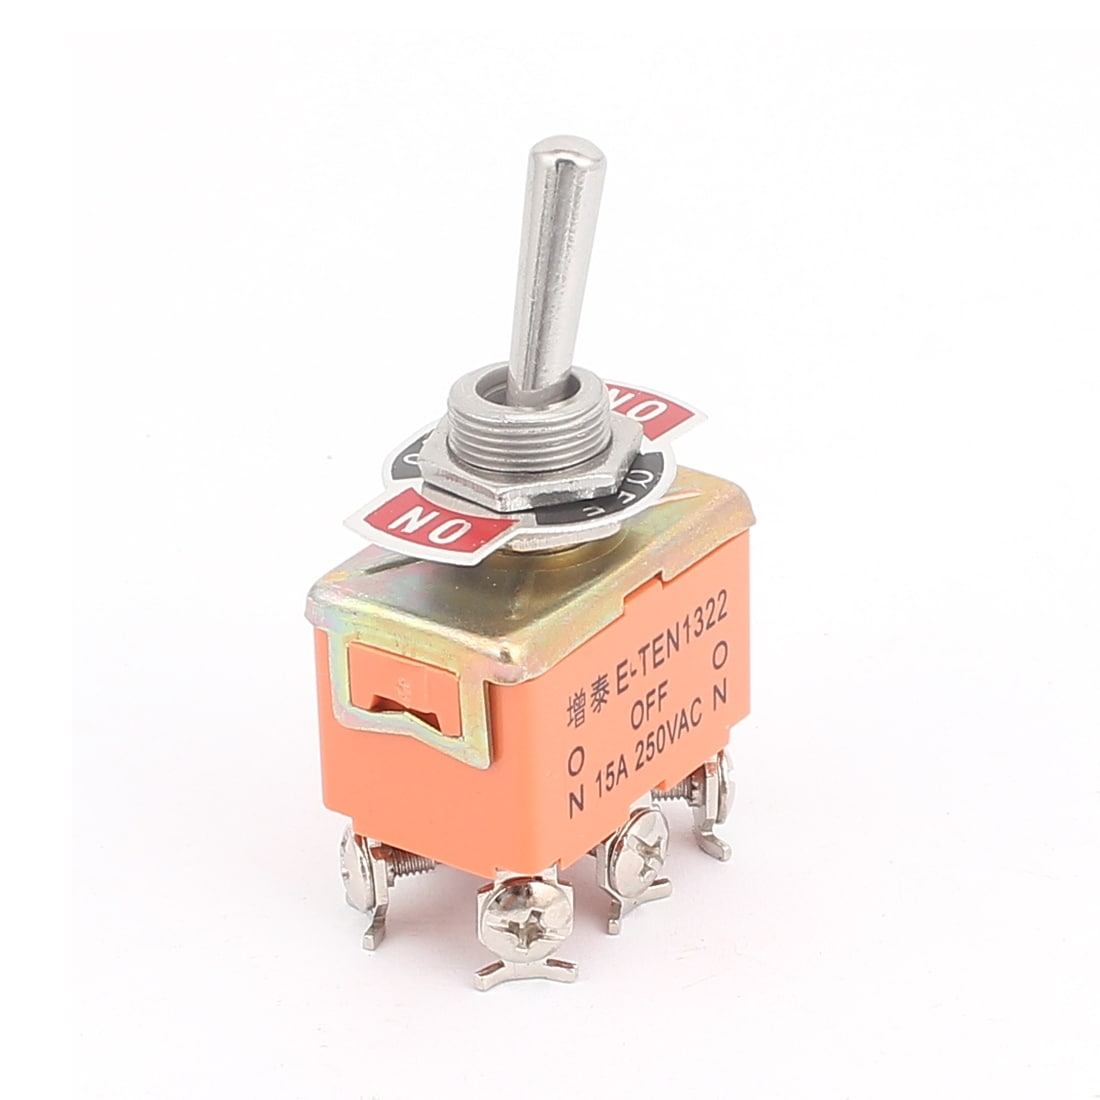 Shop Ac250v 15a 6 Screw Terminals Dpdt On Off Latching Toggle Heavy Duty Switch Onoffon Orange Free Shipping Orders Over 45 18247785